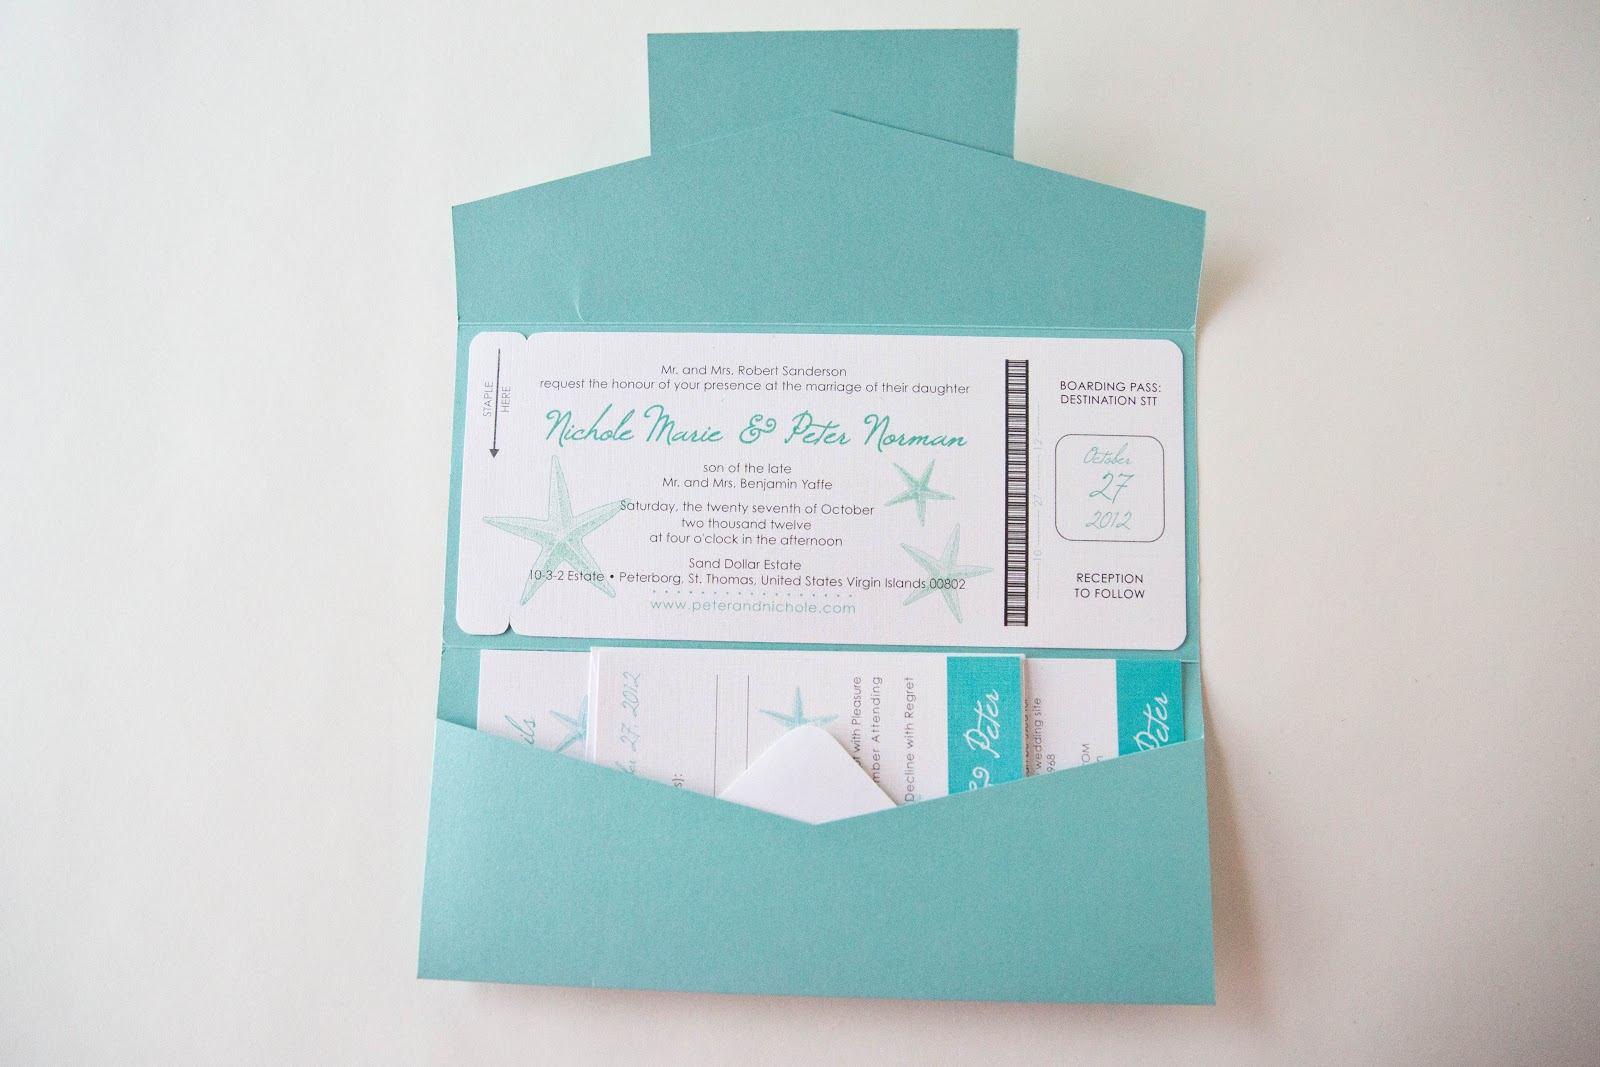 Pport Pocket Style Invitations Destination Wedding